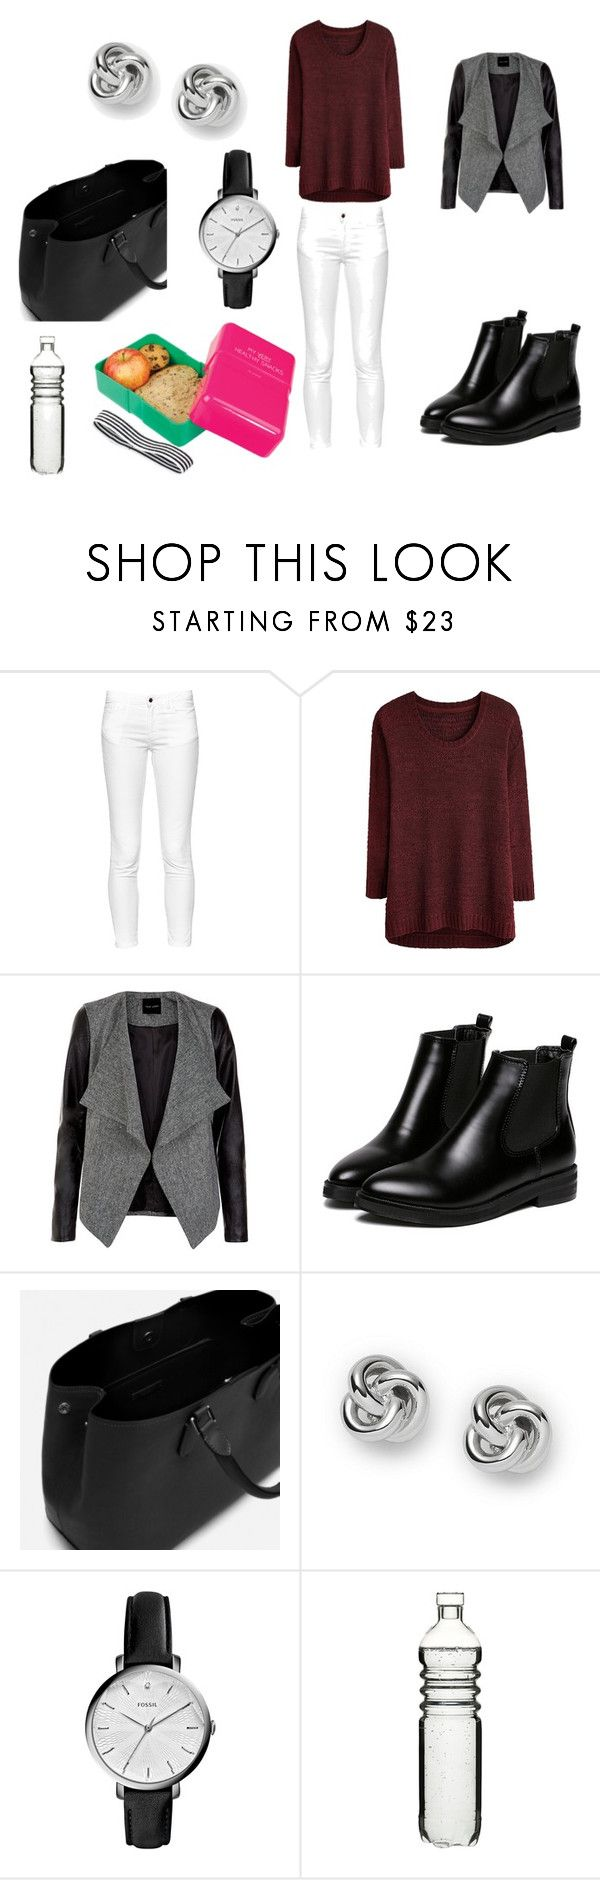 """""""Le jour d'une epreuve ( bac, brevet, examen ...)"""" by lola18-04 ❤ liked on Polyvore featuring French Connection, Zara, FOSSIL, Dot & Bo and Wild & Wolf"""